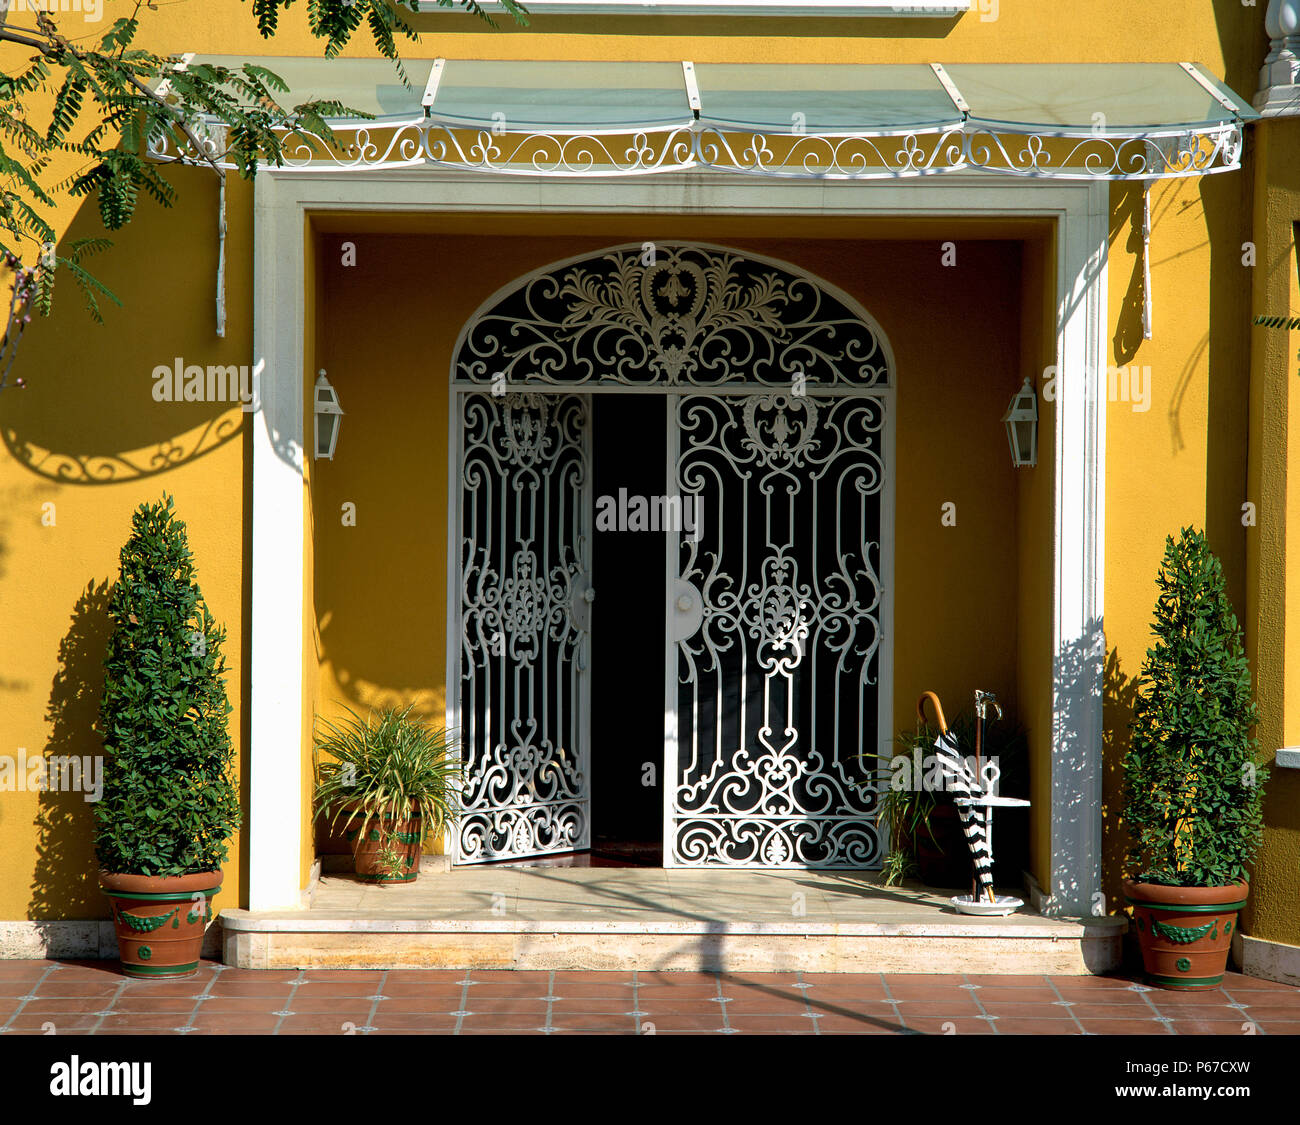 View of an ornate door - Stock Image